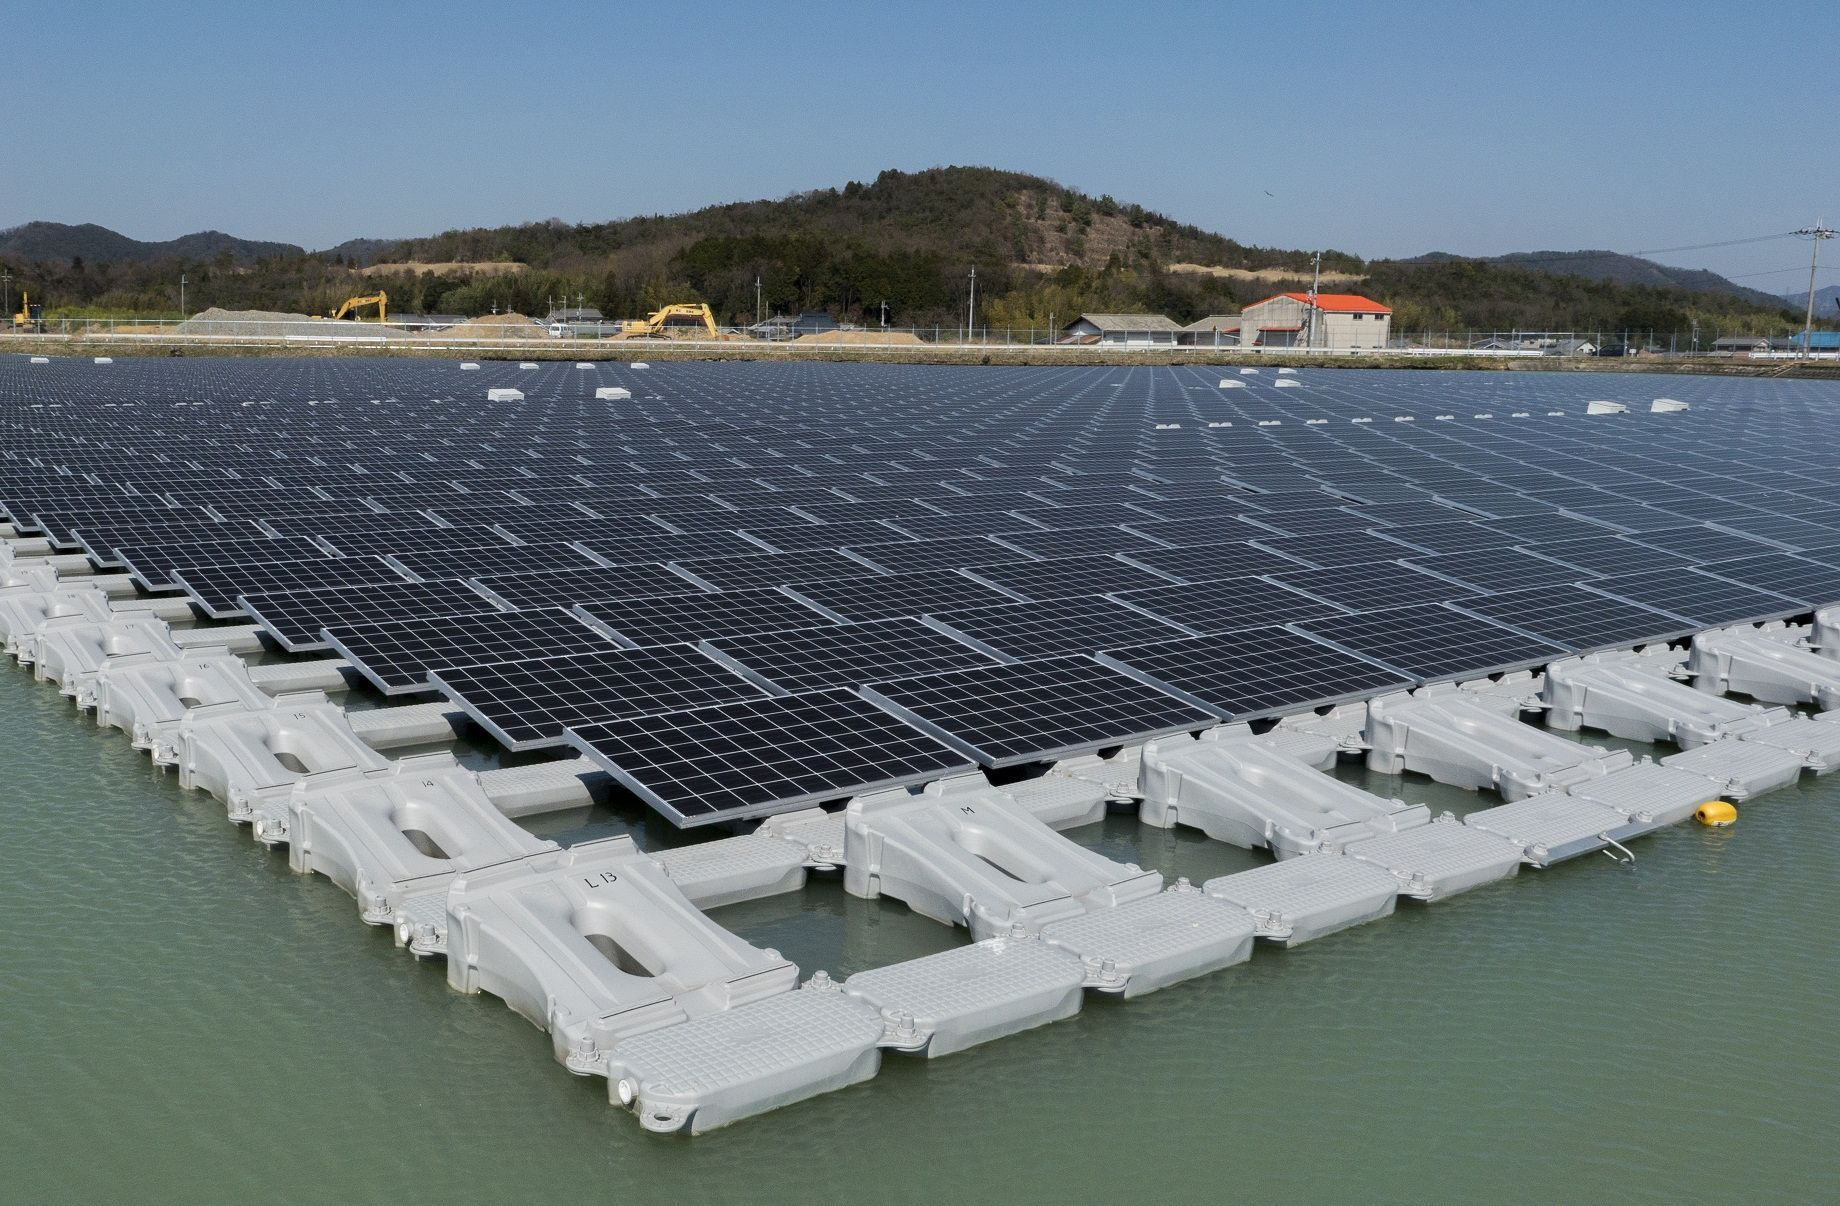 Shade balls or floating solar panels